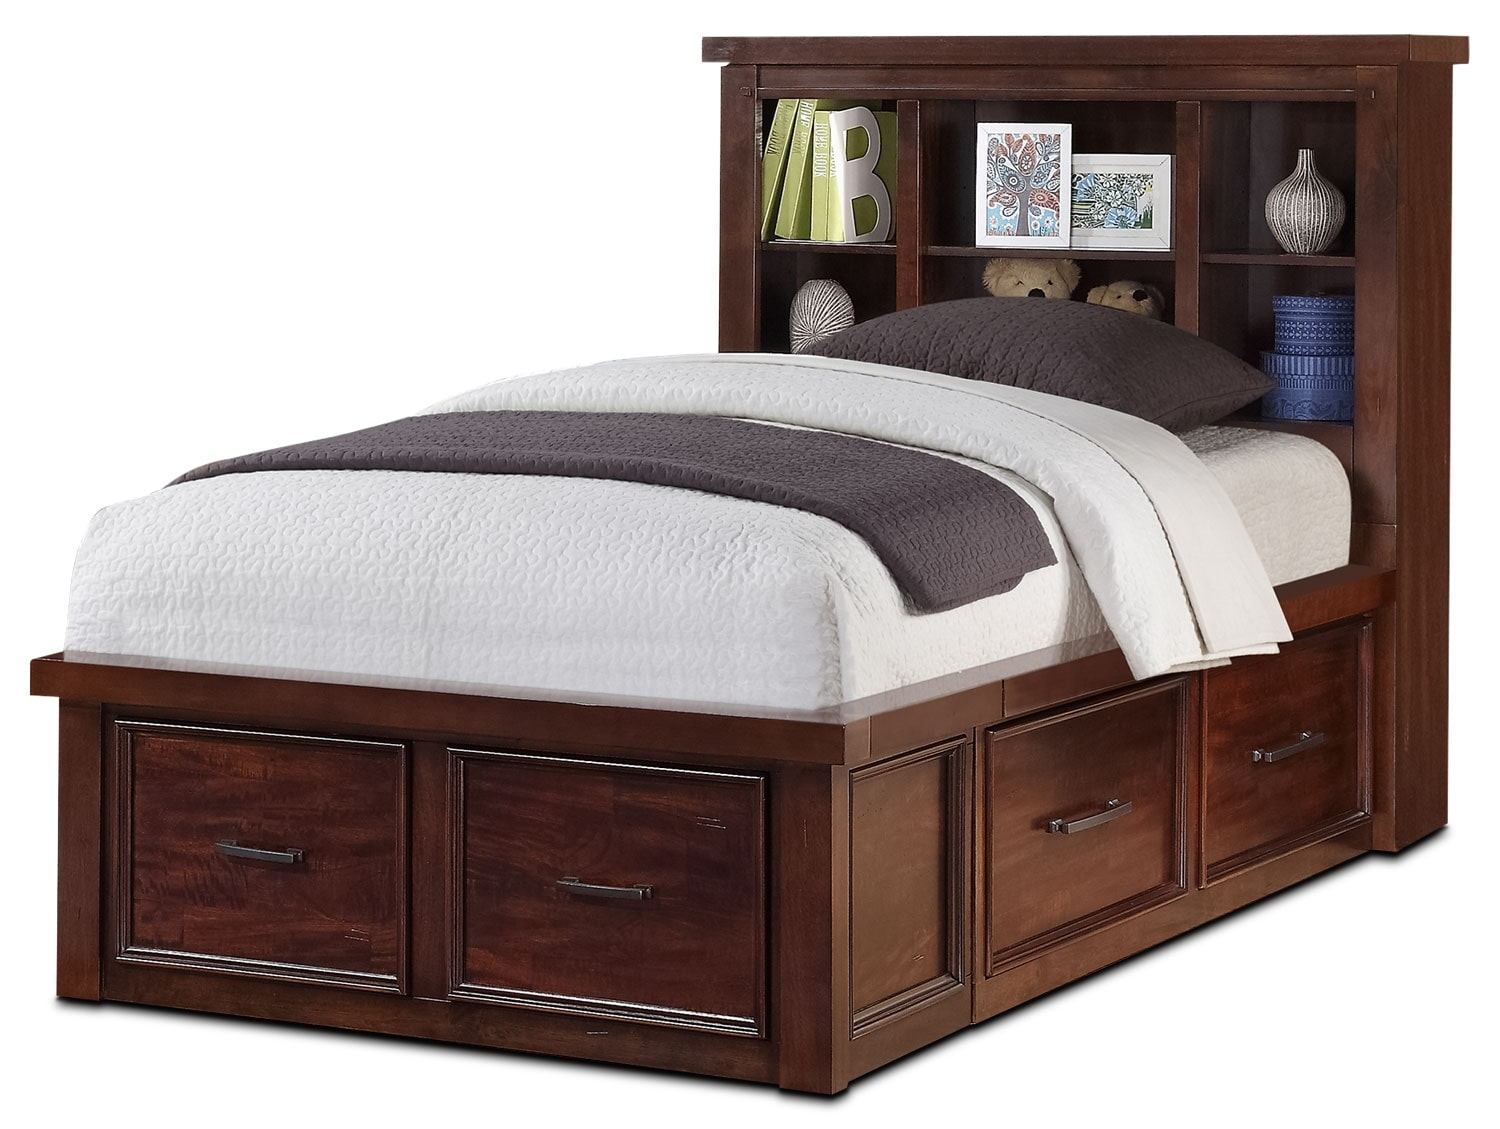 Sonoma Youth Full Bookcase Storage Bed